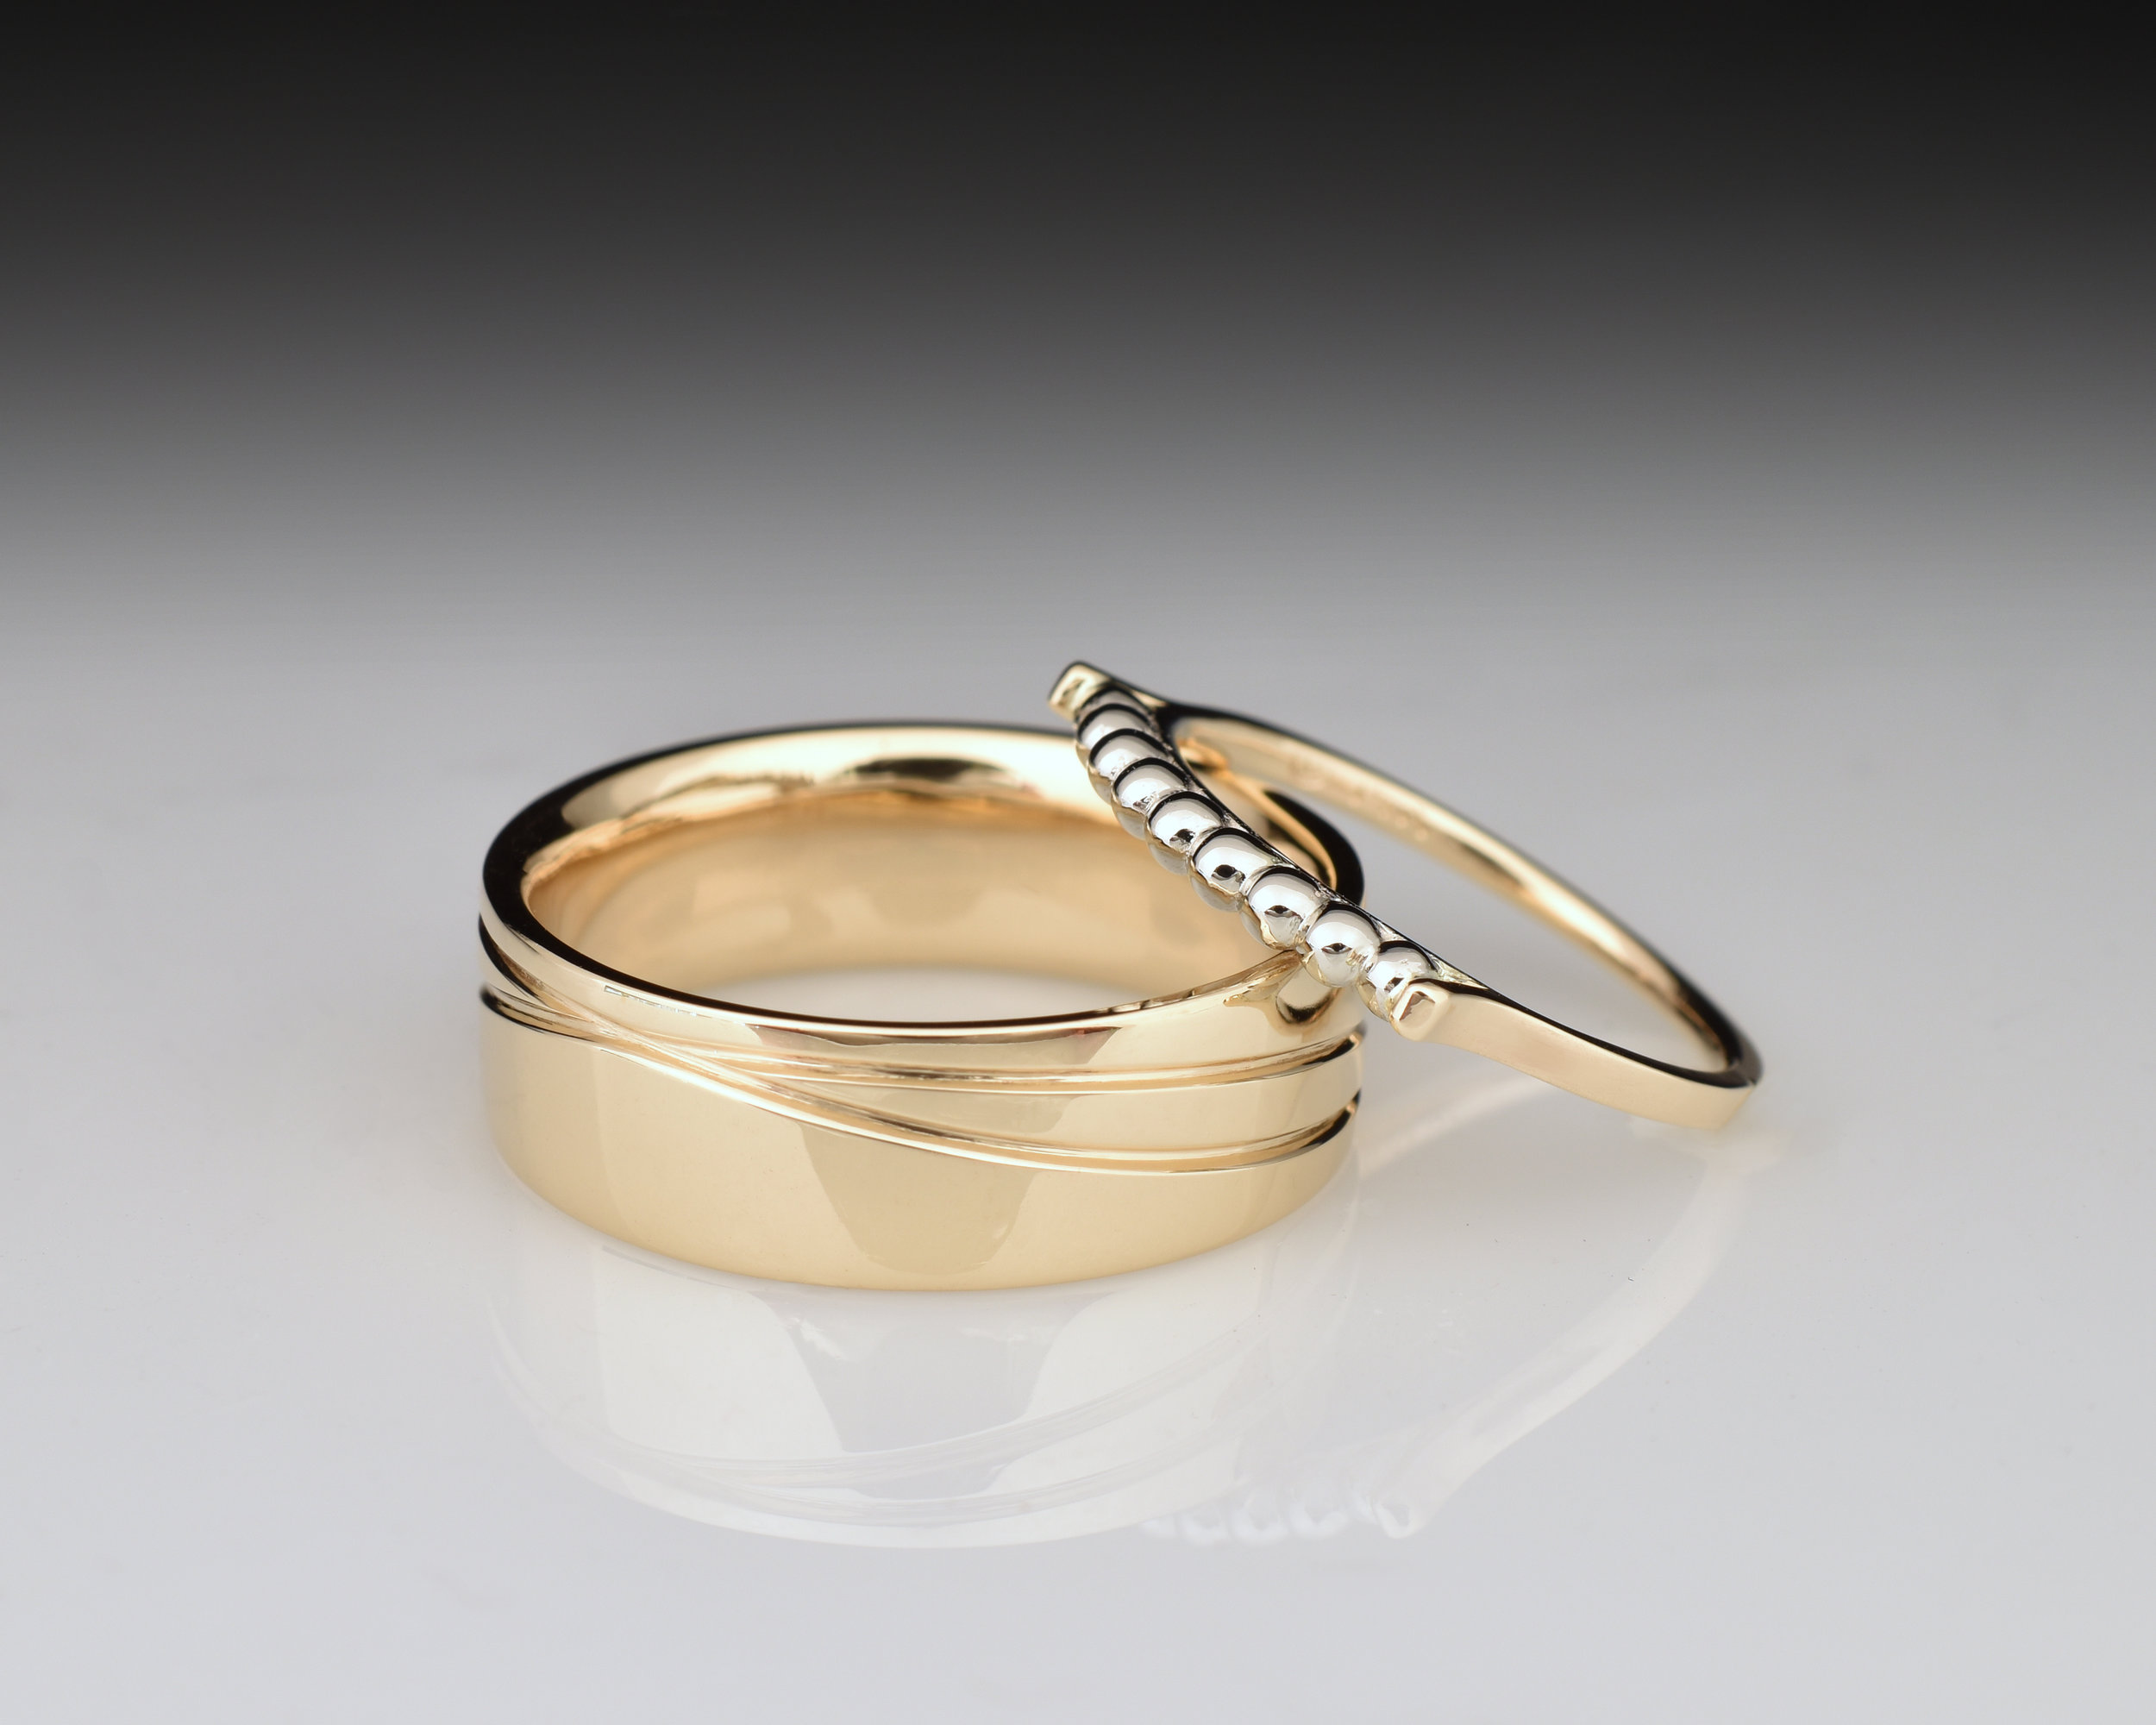 14k Yellow and White Gold wedding bands.